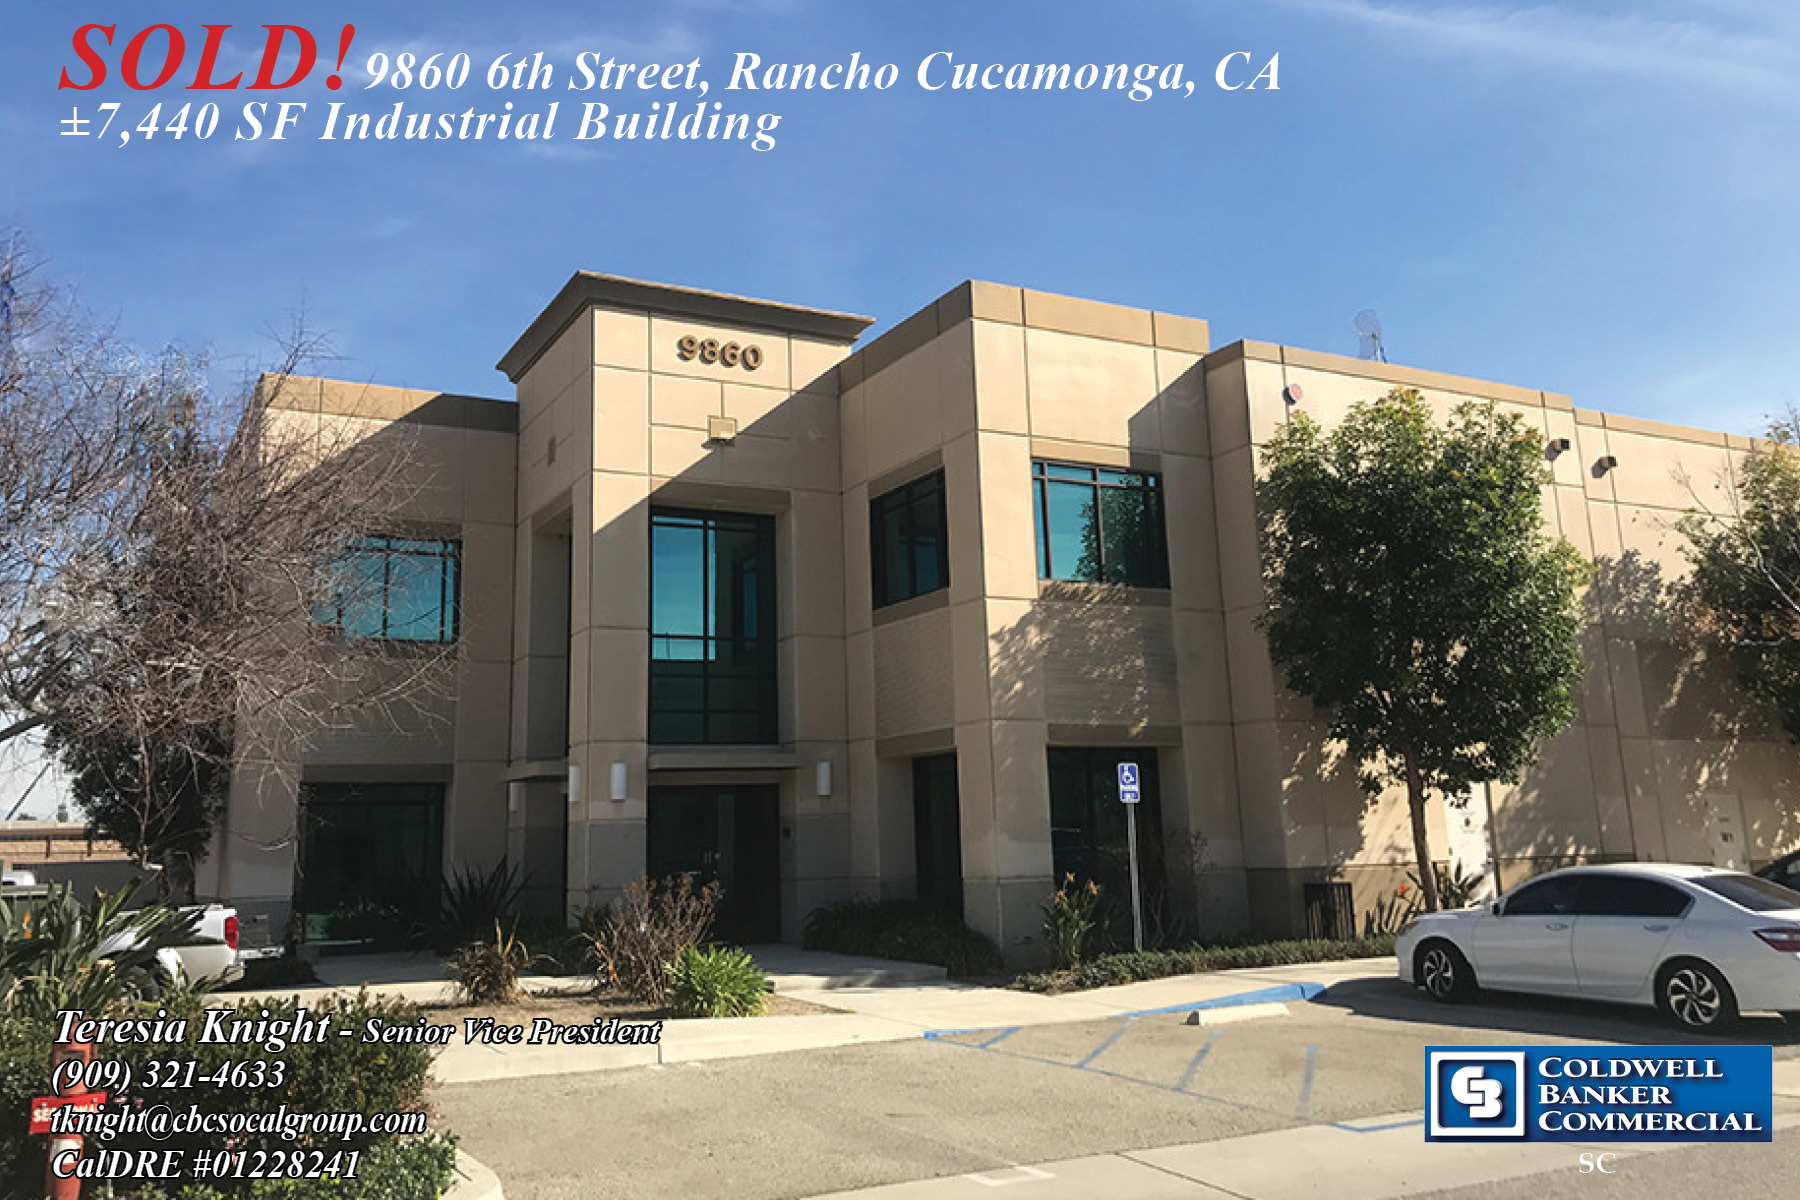 SOLD! by Teresia Knight a ±7,440 SF Industrial Building in Rancho Cucamonga.